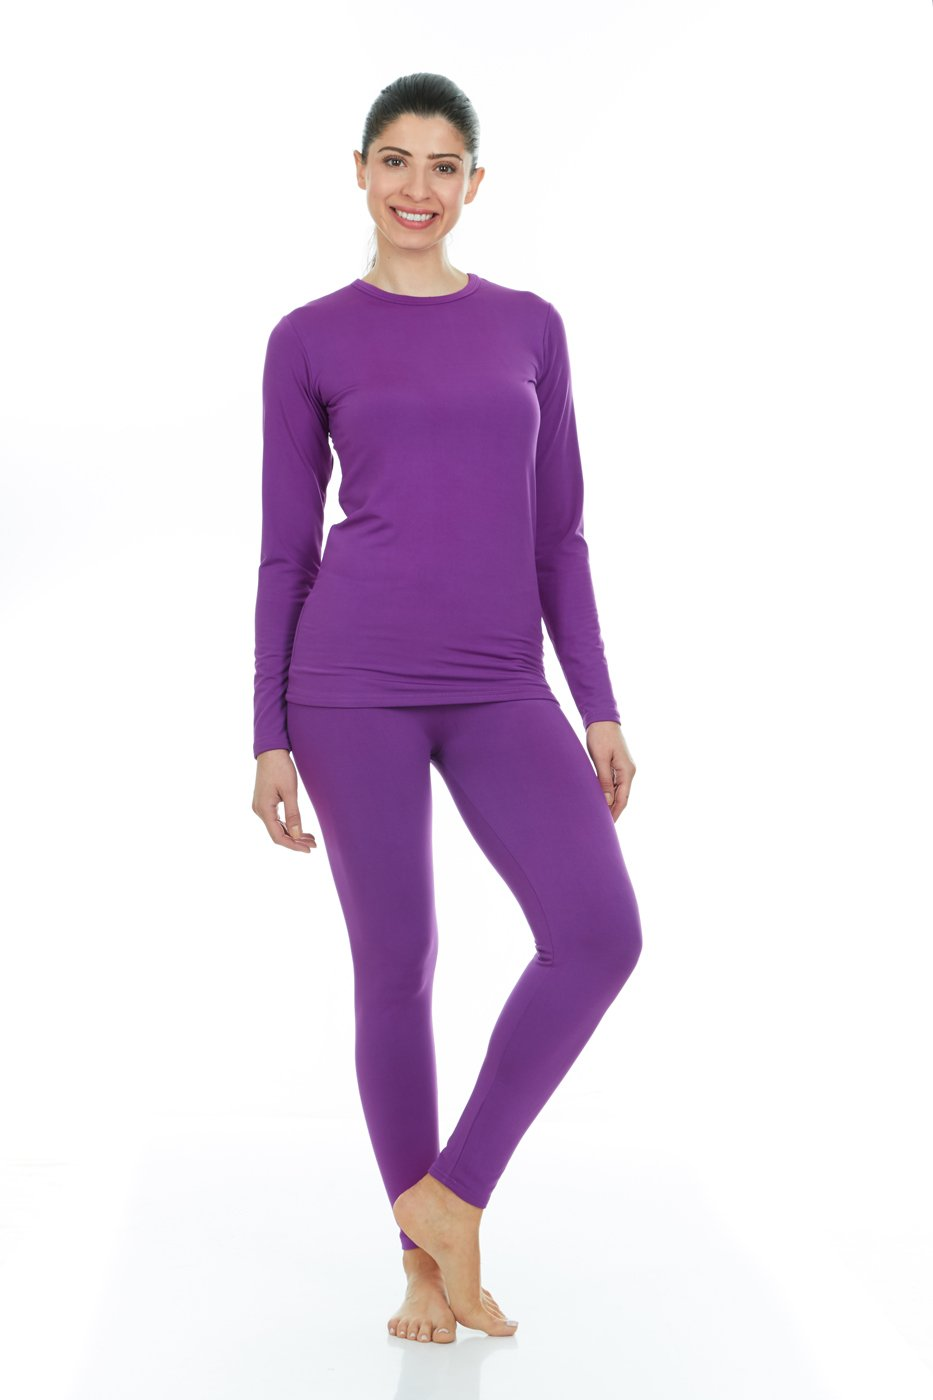 Thermajane Women's Ultra Soft Thermal Underwear Long Johns Set with Fleece Lined (XX-Small, Purple) by Thermajane